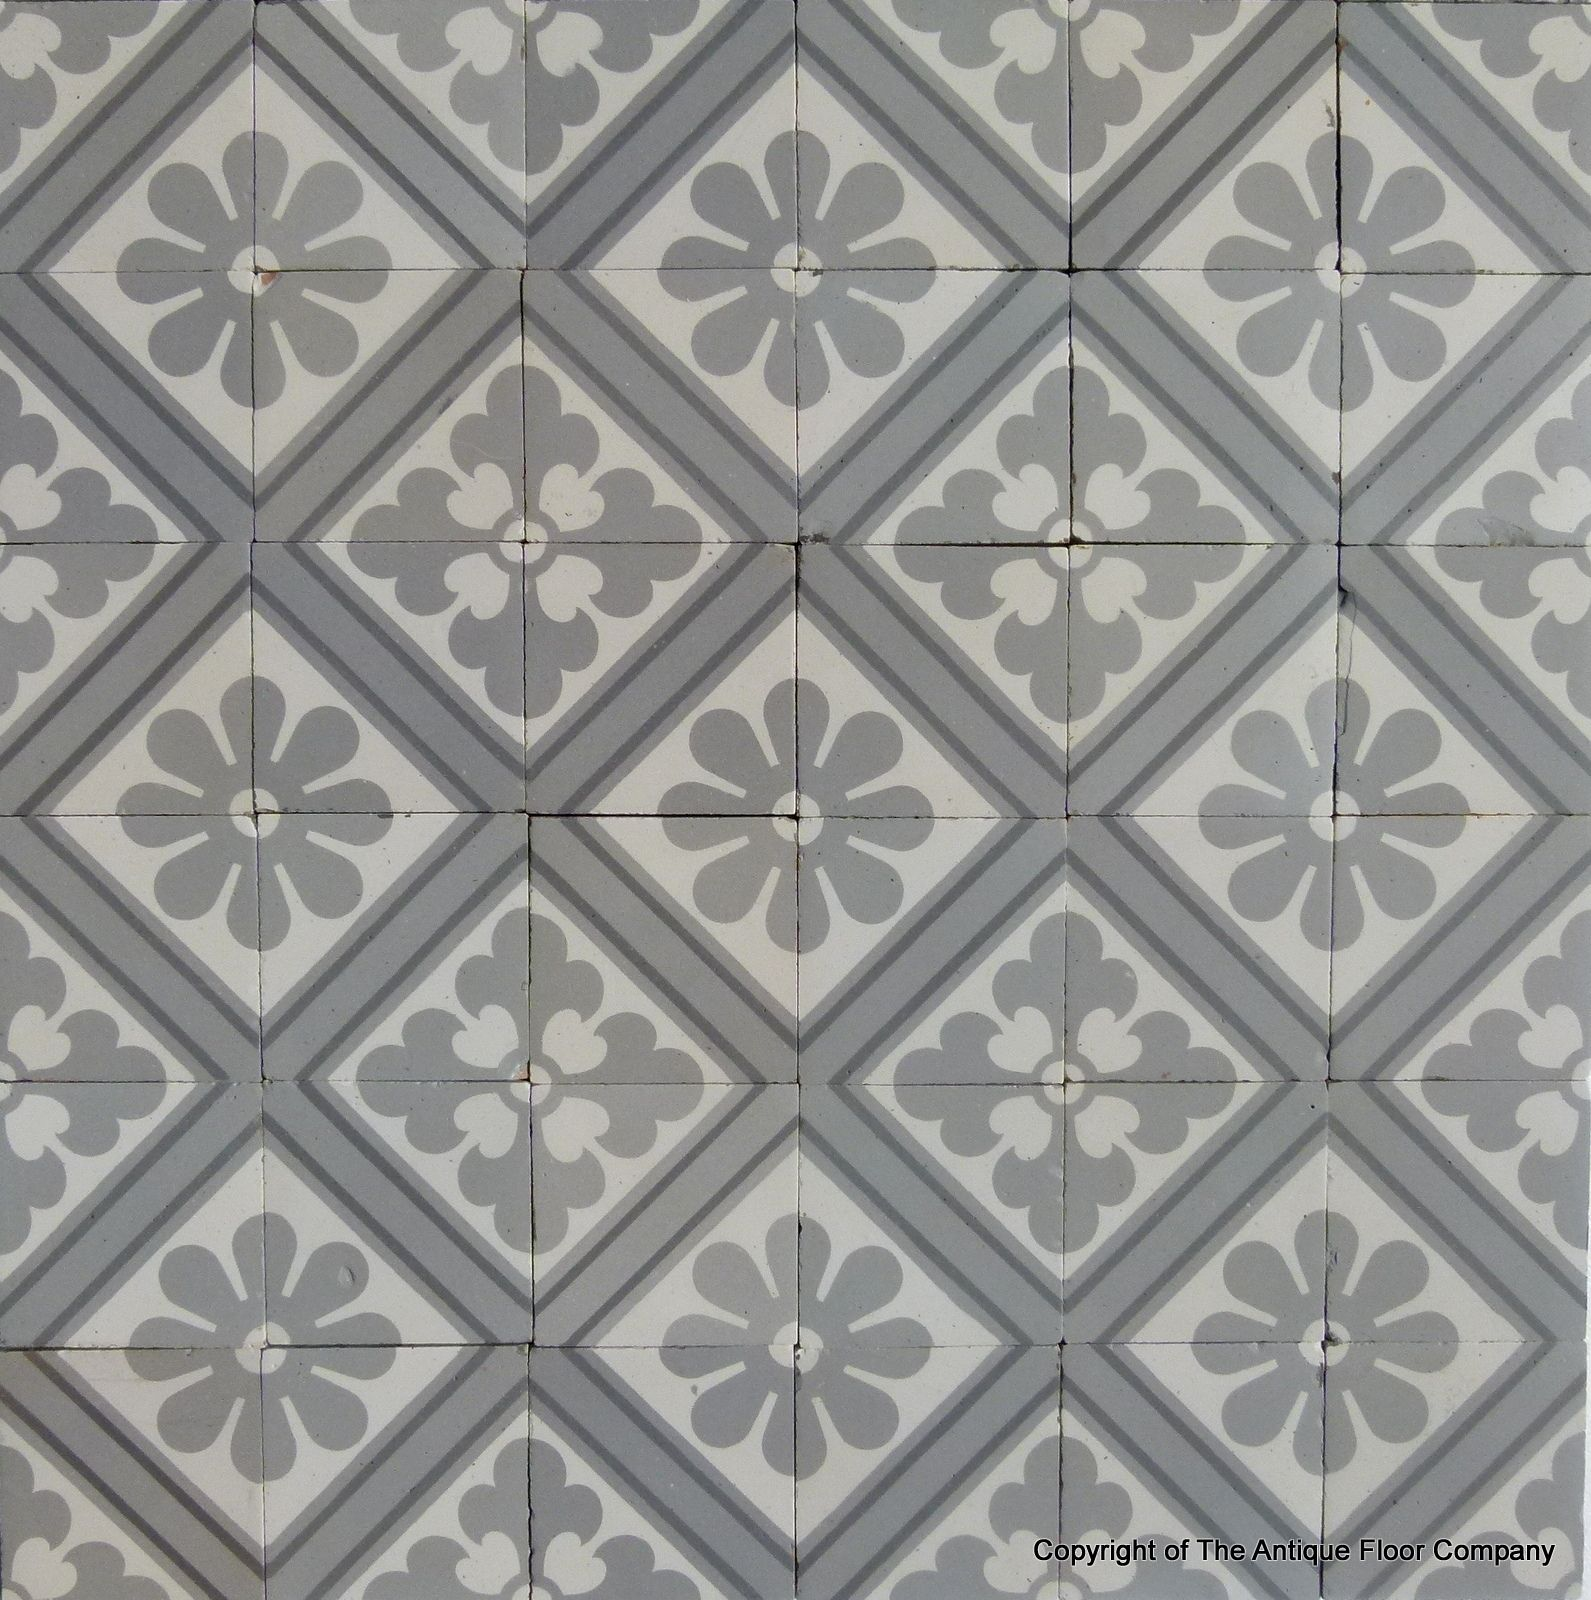 1225m2 of classical paray le monial antique french ceramic tiles c of classical paray le monial antique french ceramic tiles the antique floor company dailygadgetfo Images